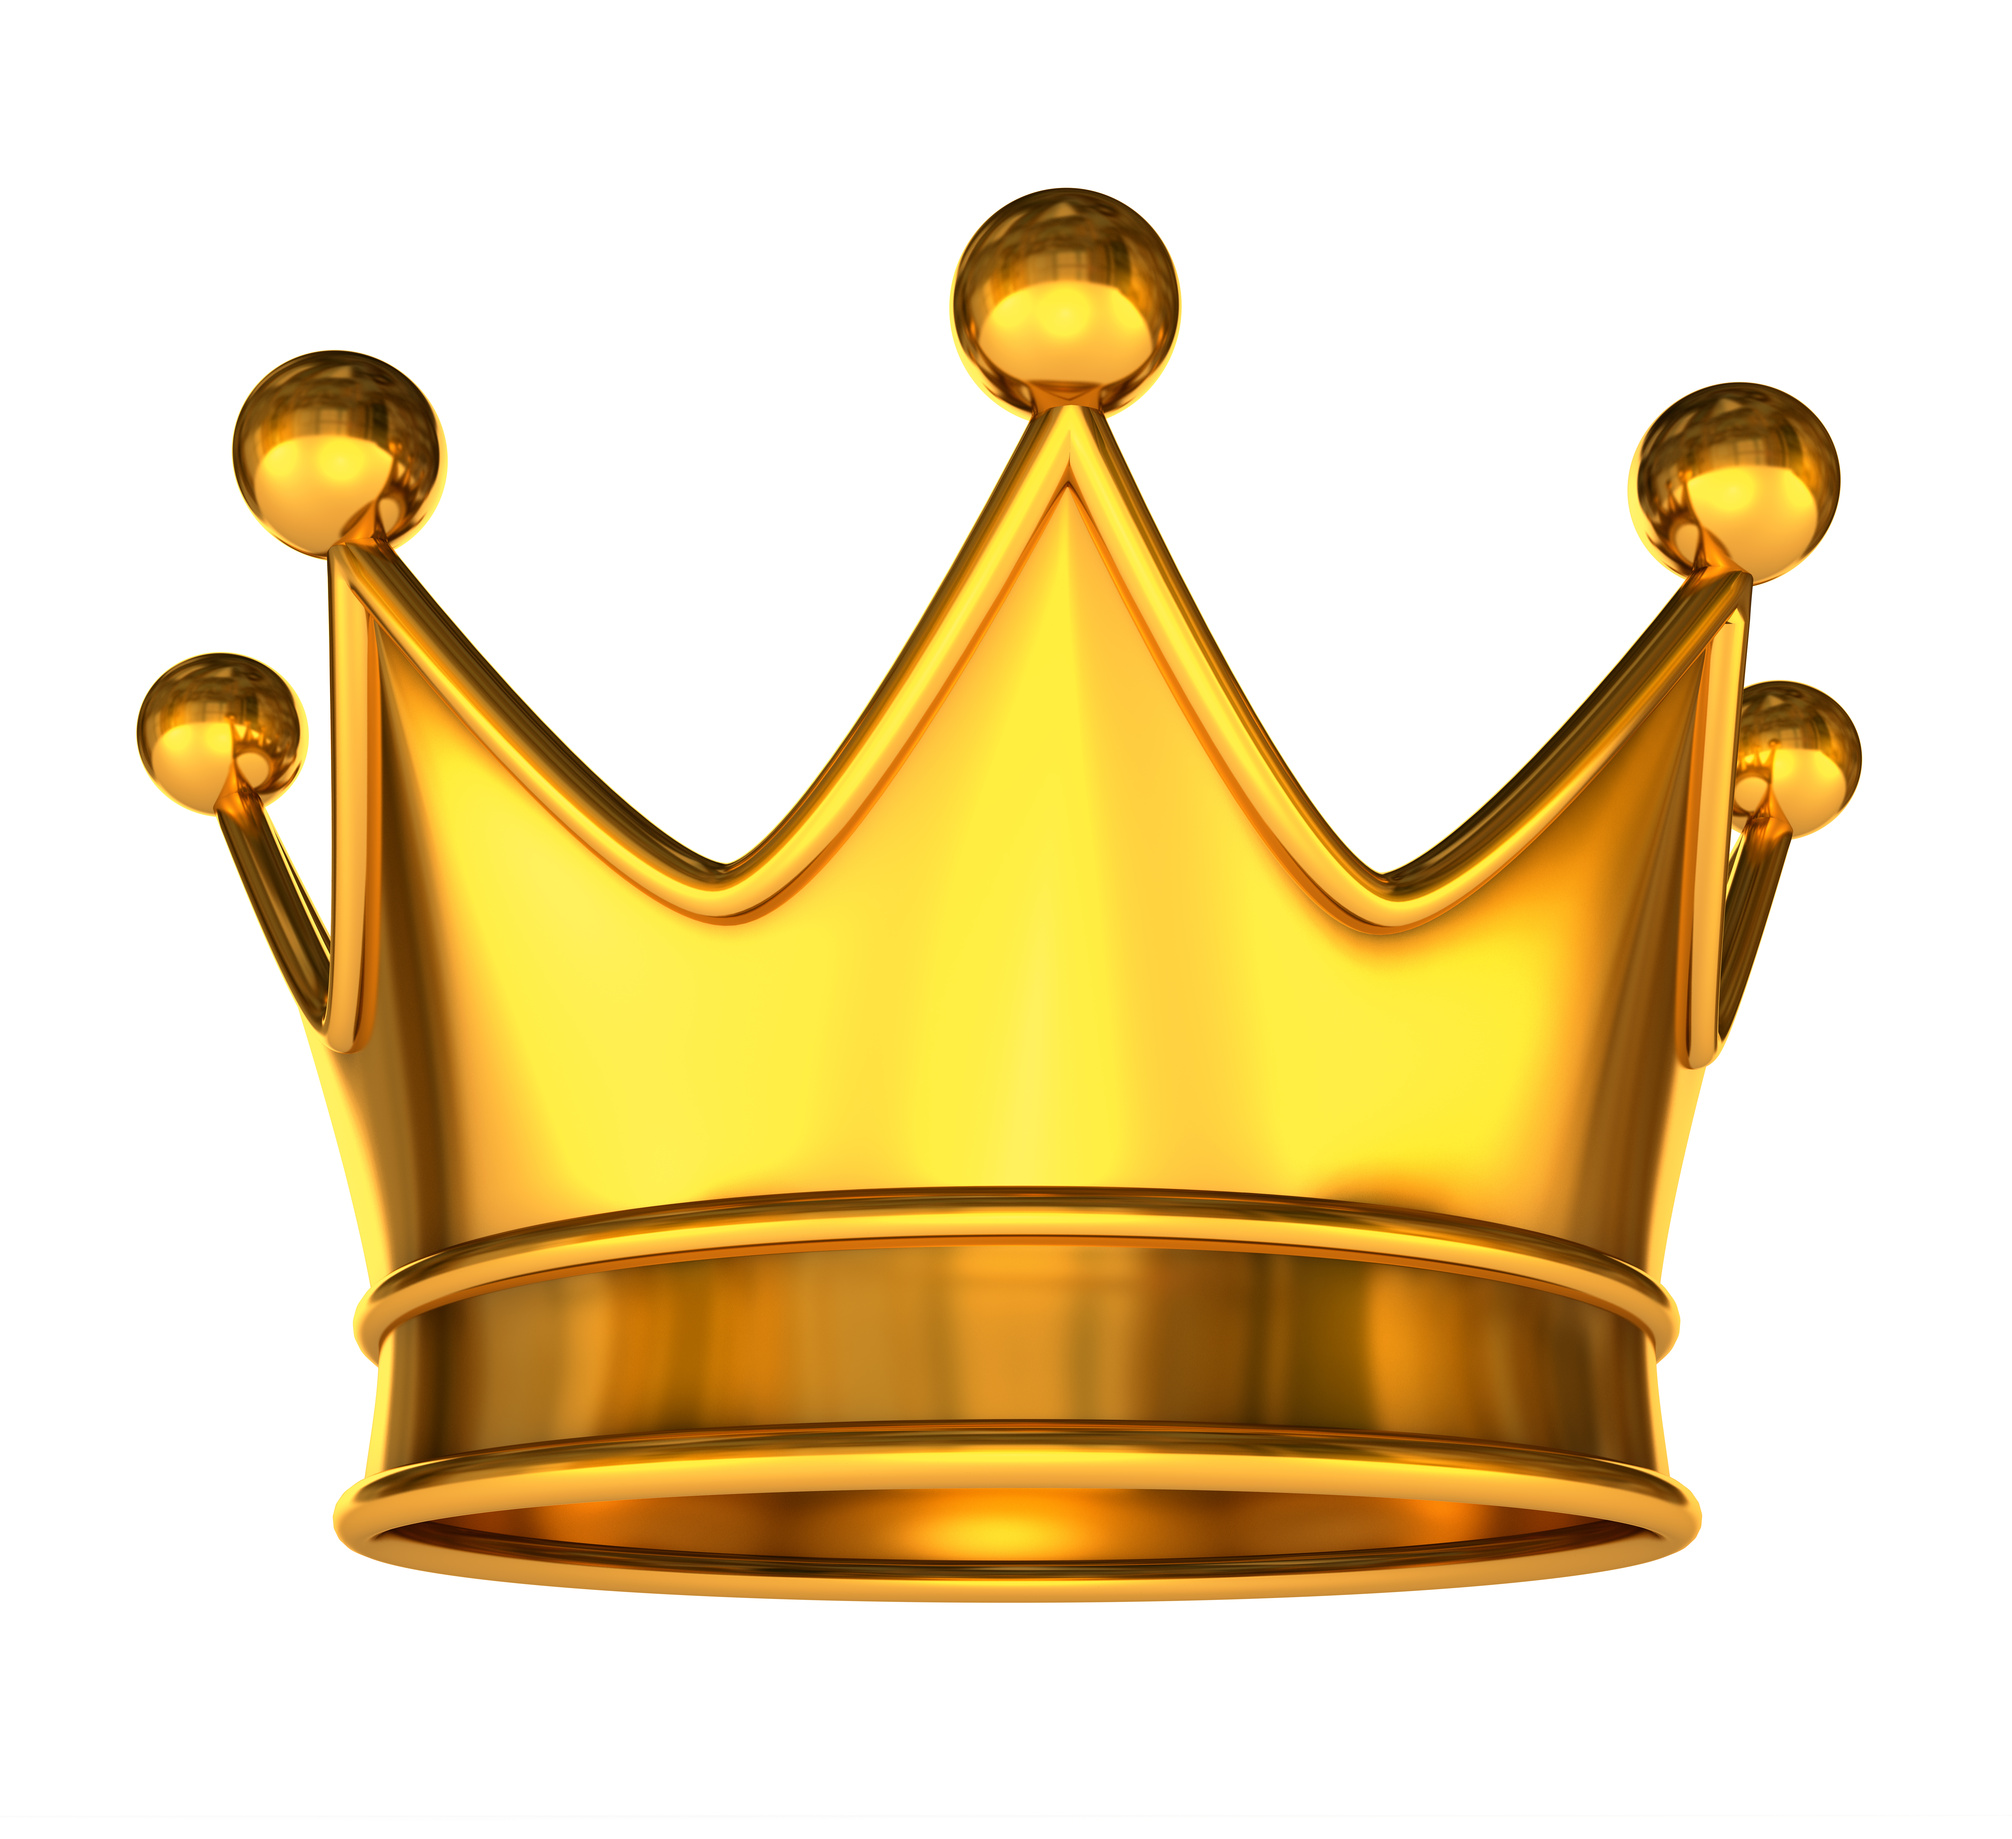 2012x1839 Gold Crown King Clipart